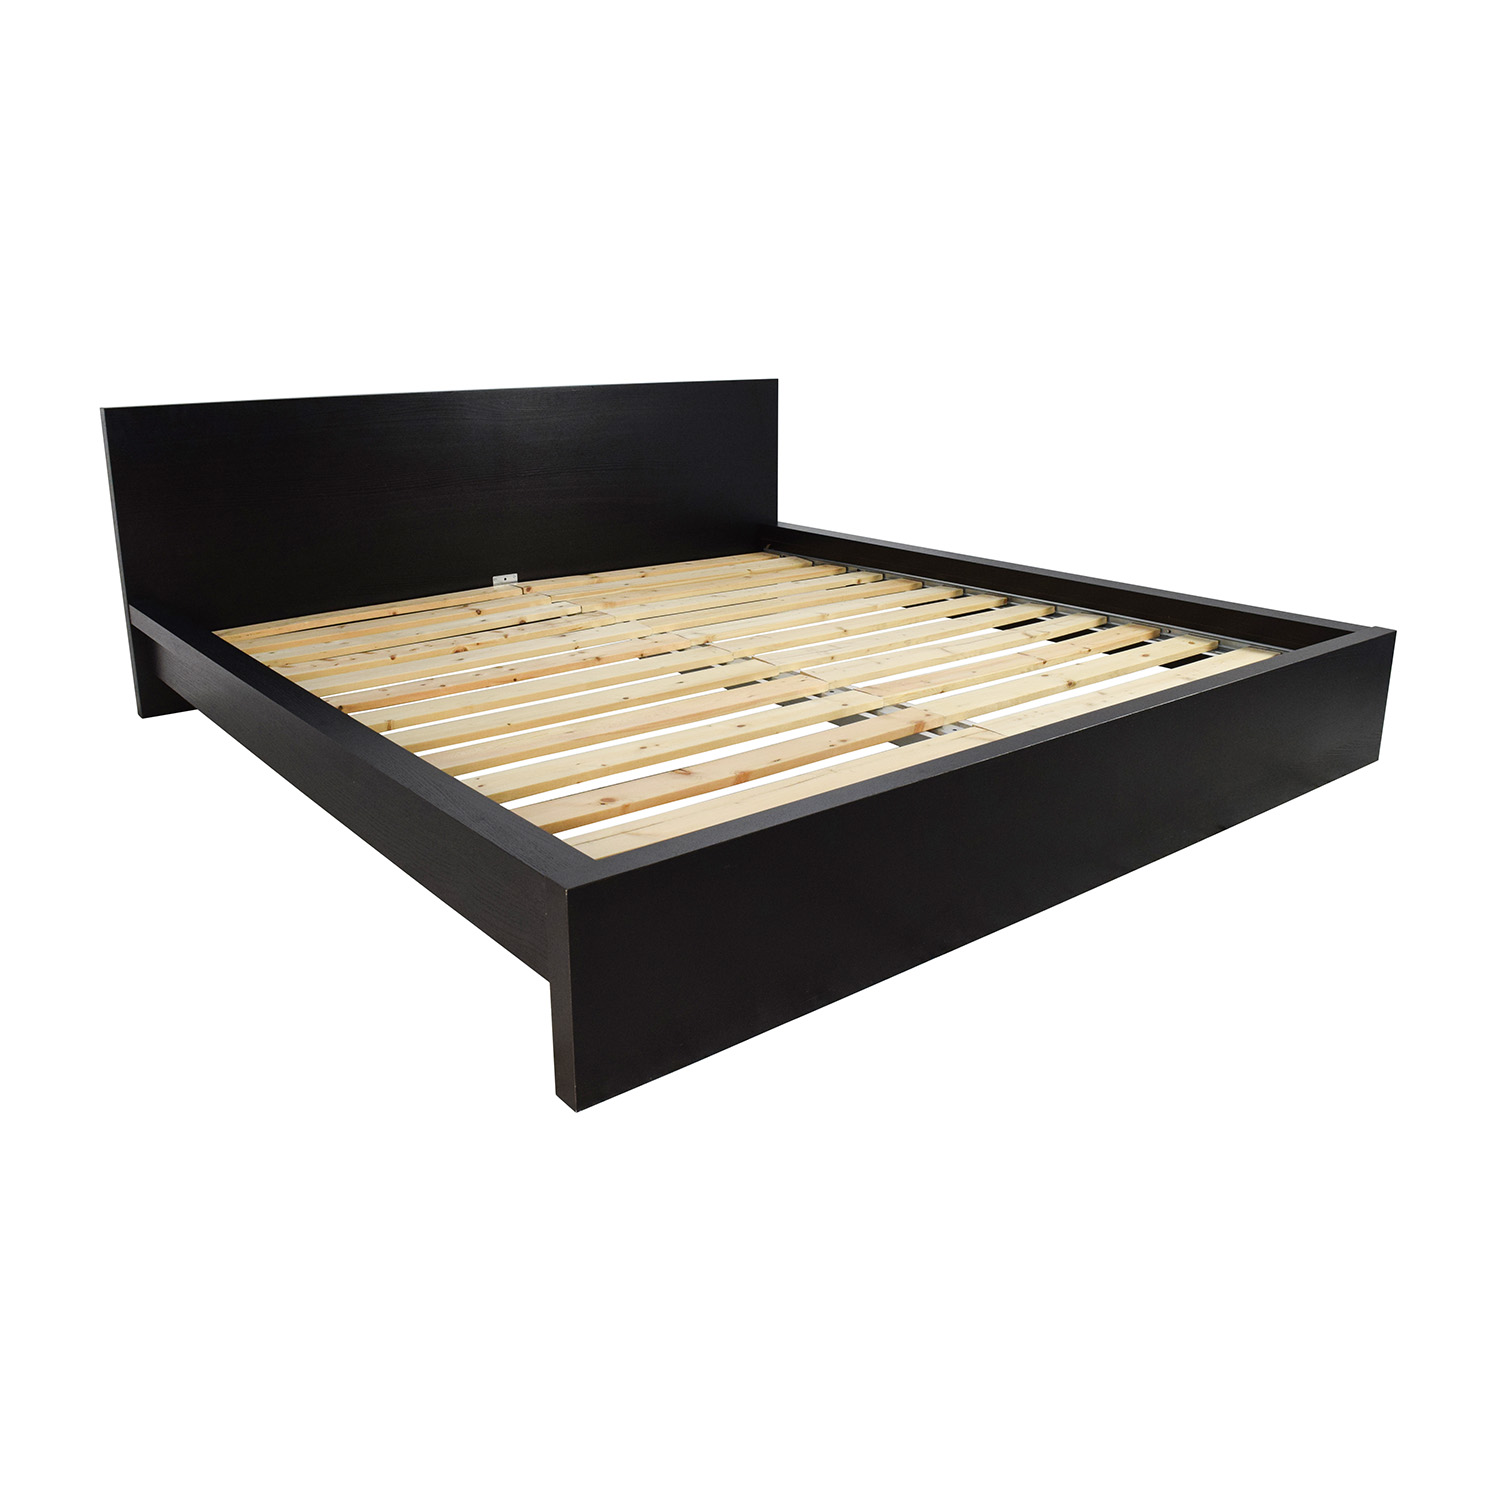 ikea king size beds 81 ikea ikea malm king size bed beds 15613